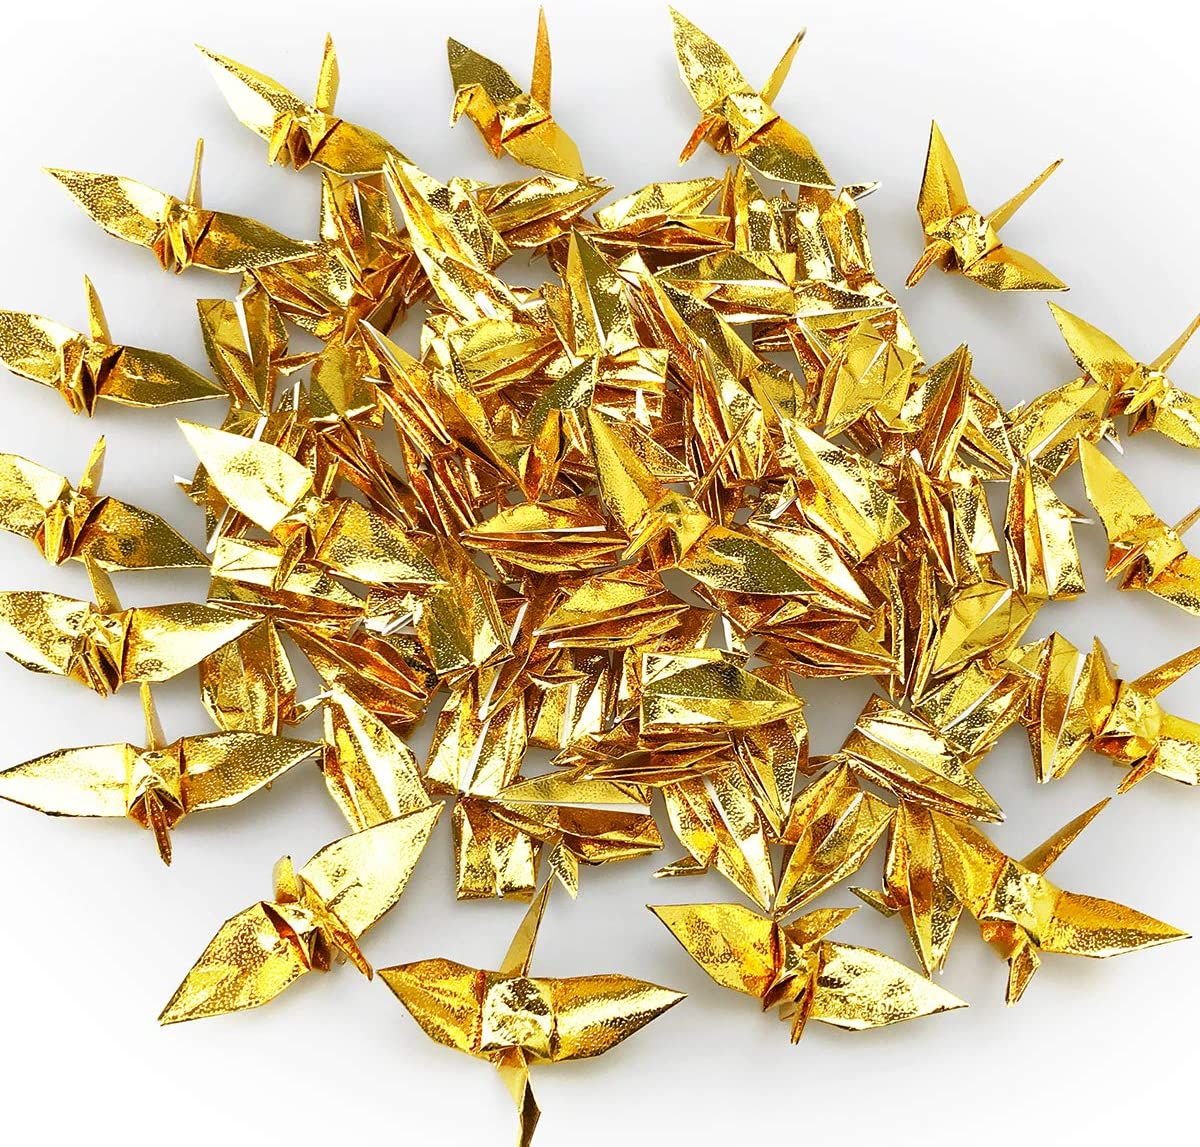 Hand-Made Folded DIY Japanese Crane Mobile String Garland for Wedding Baby Shower Party Banner Hanging Backdrop Home Decoration 100 PCS Origami Paper Cranes Glitter Gold